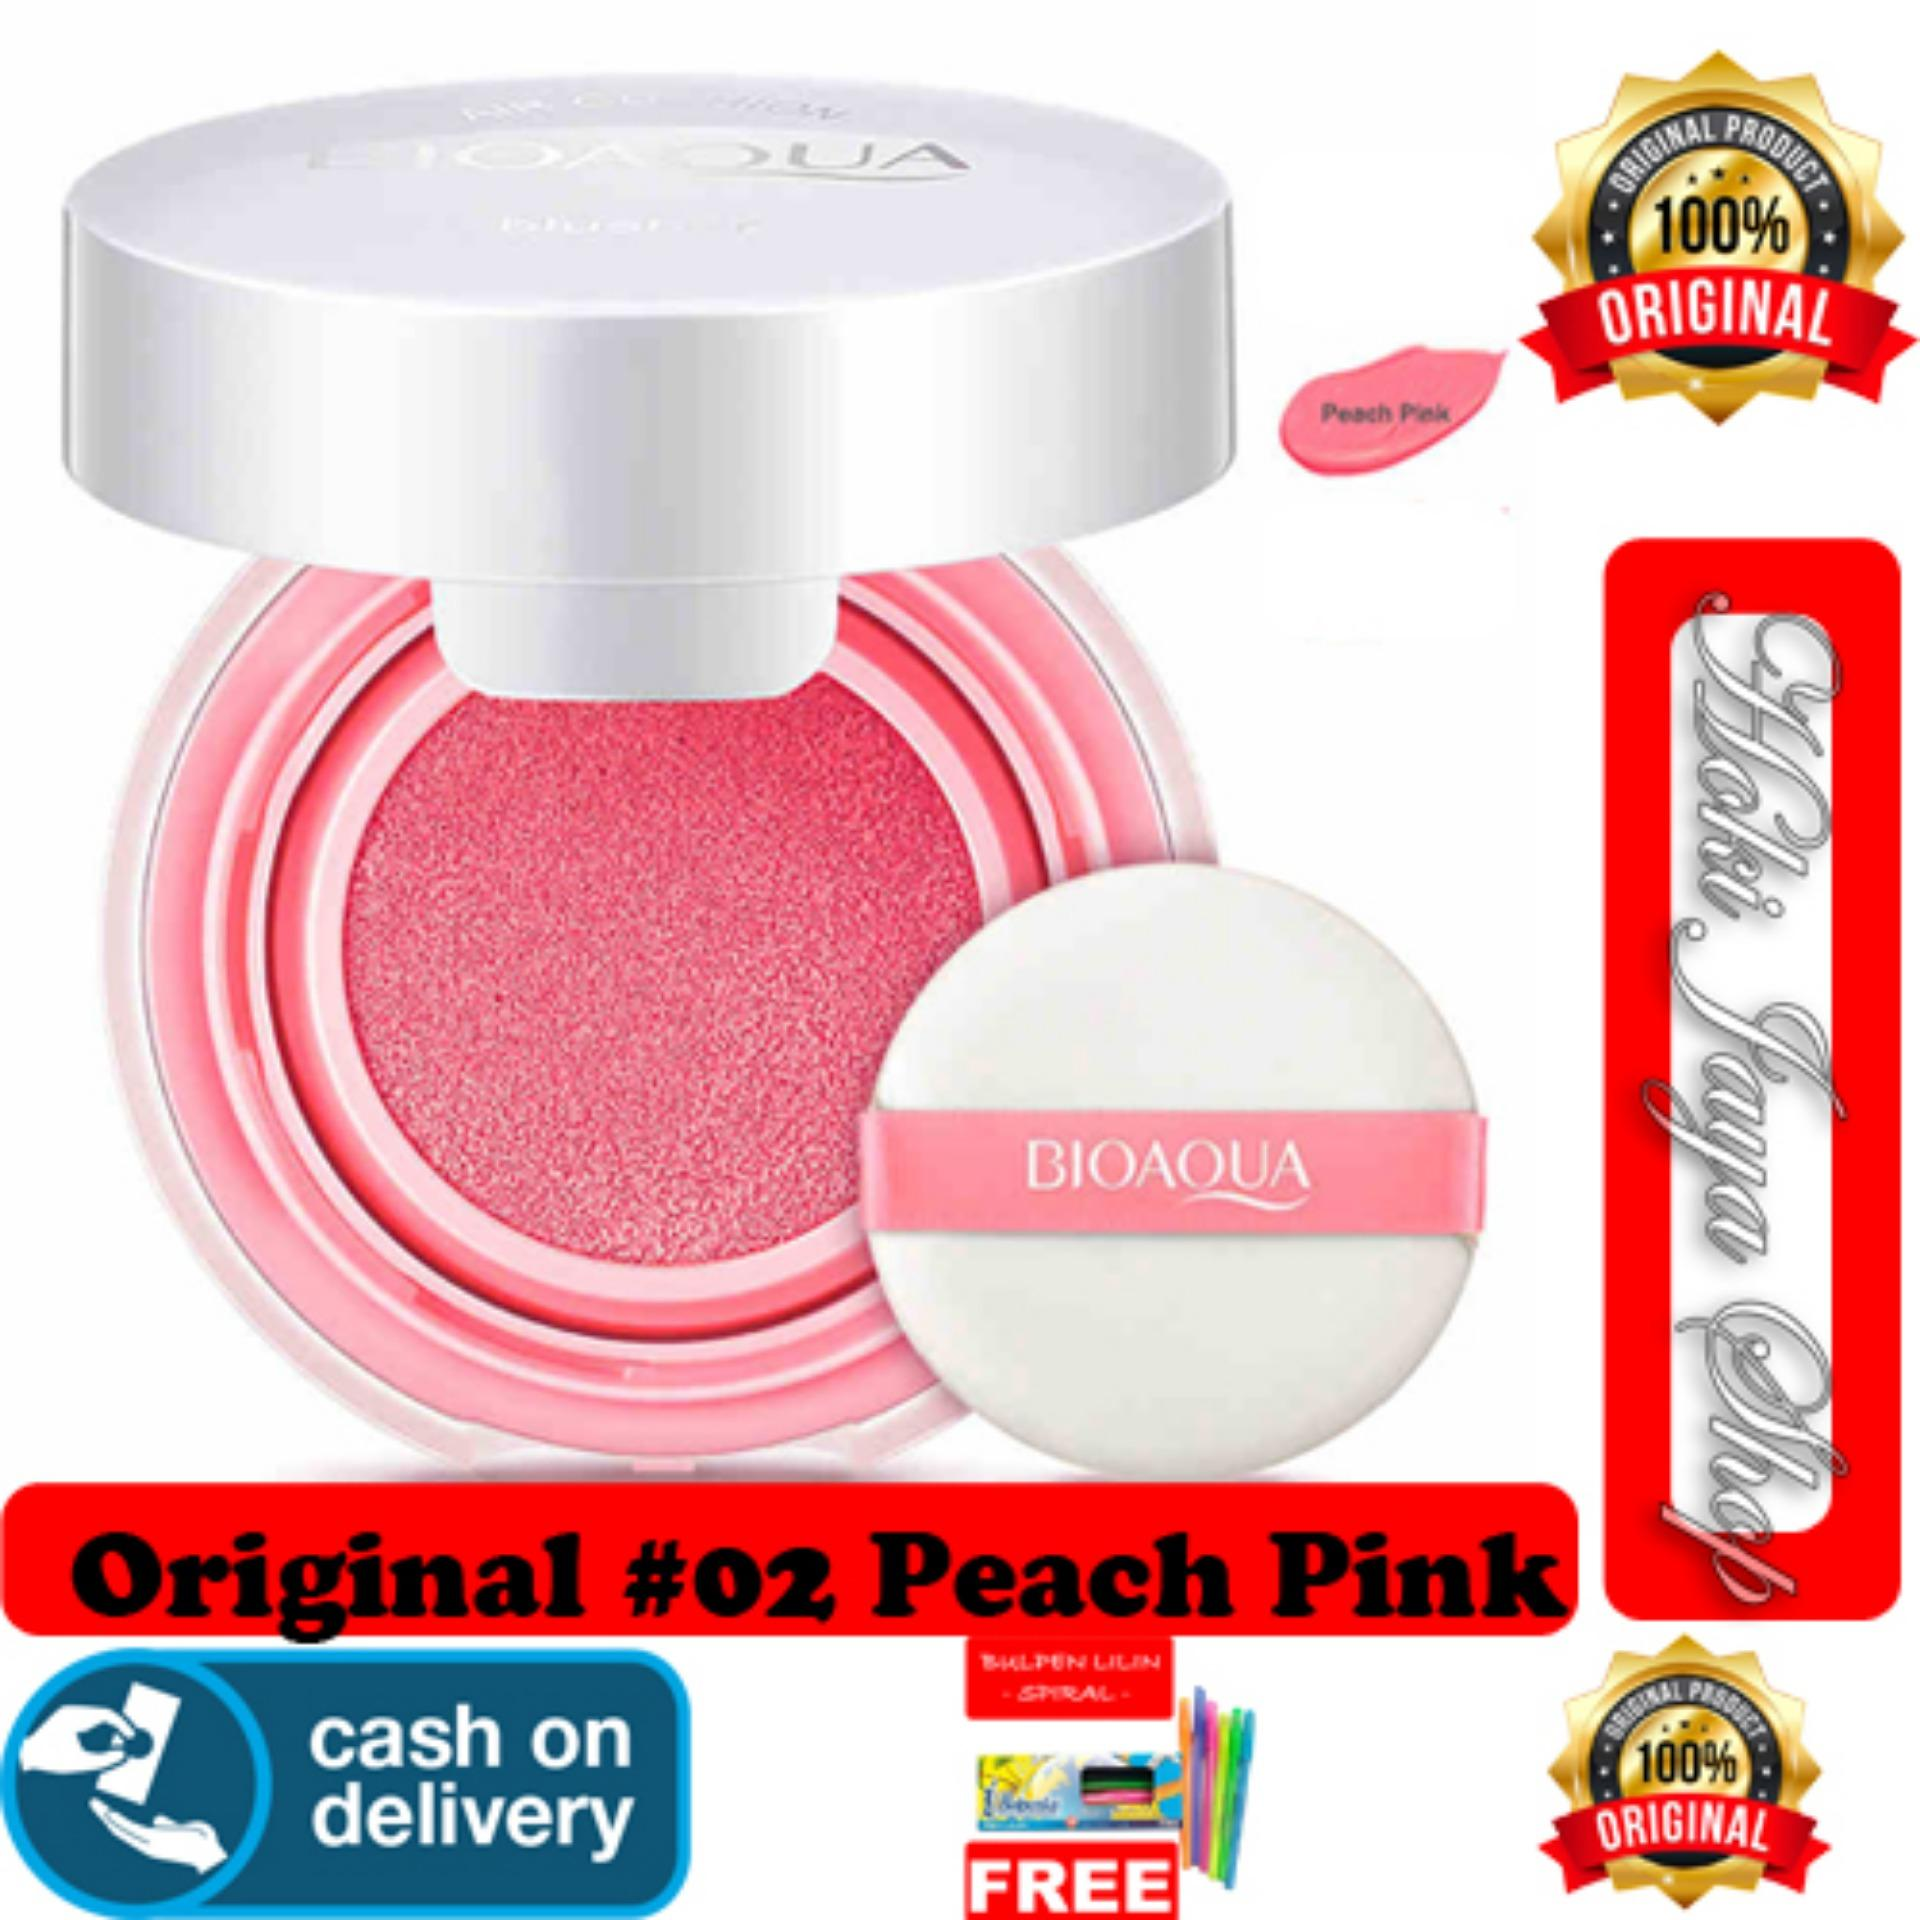 HOKI COD 02 PEACH PINK BioAqua Blush Air Cushion Smooth Muscle